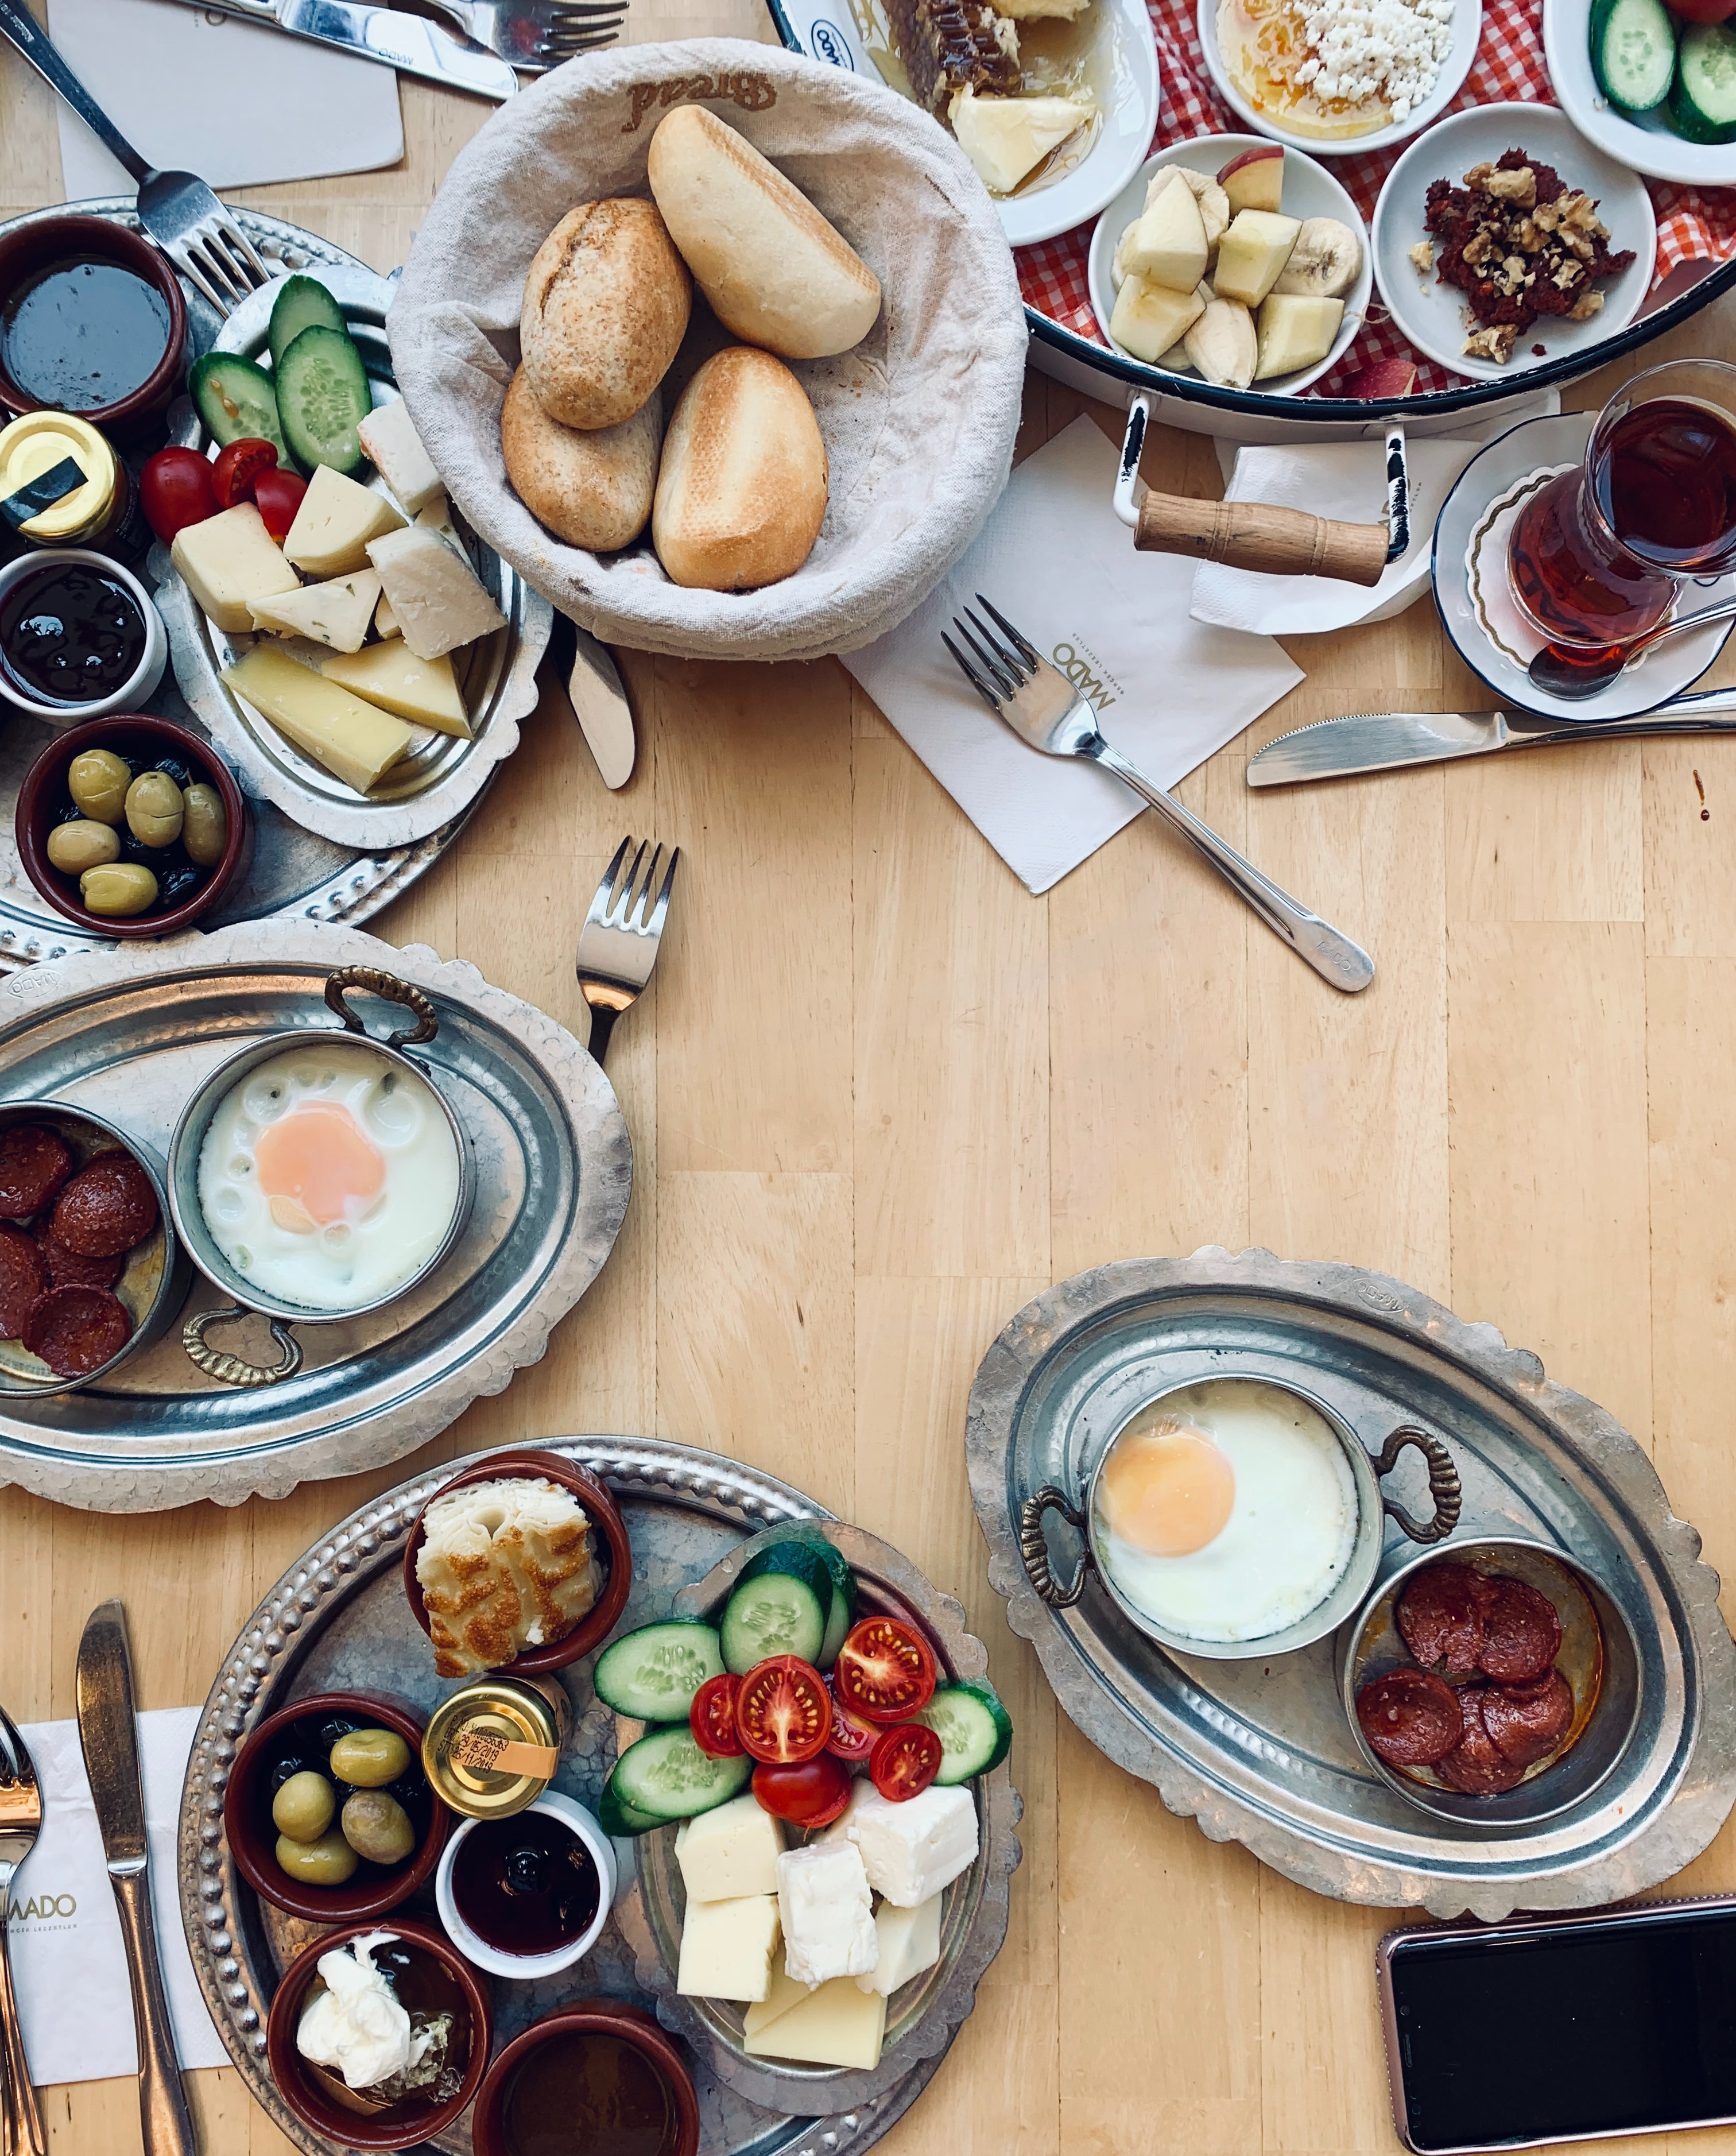 4 Great Non-Touristy Places To Eat In Istanbul